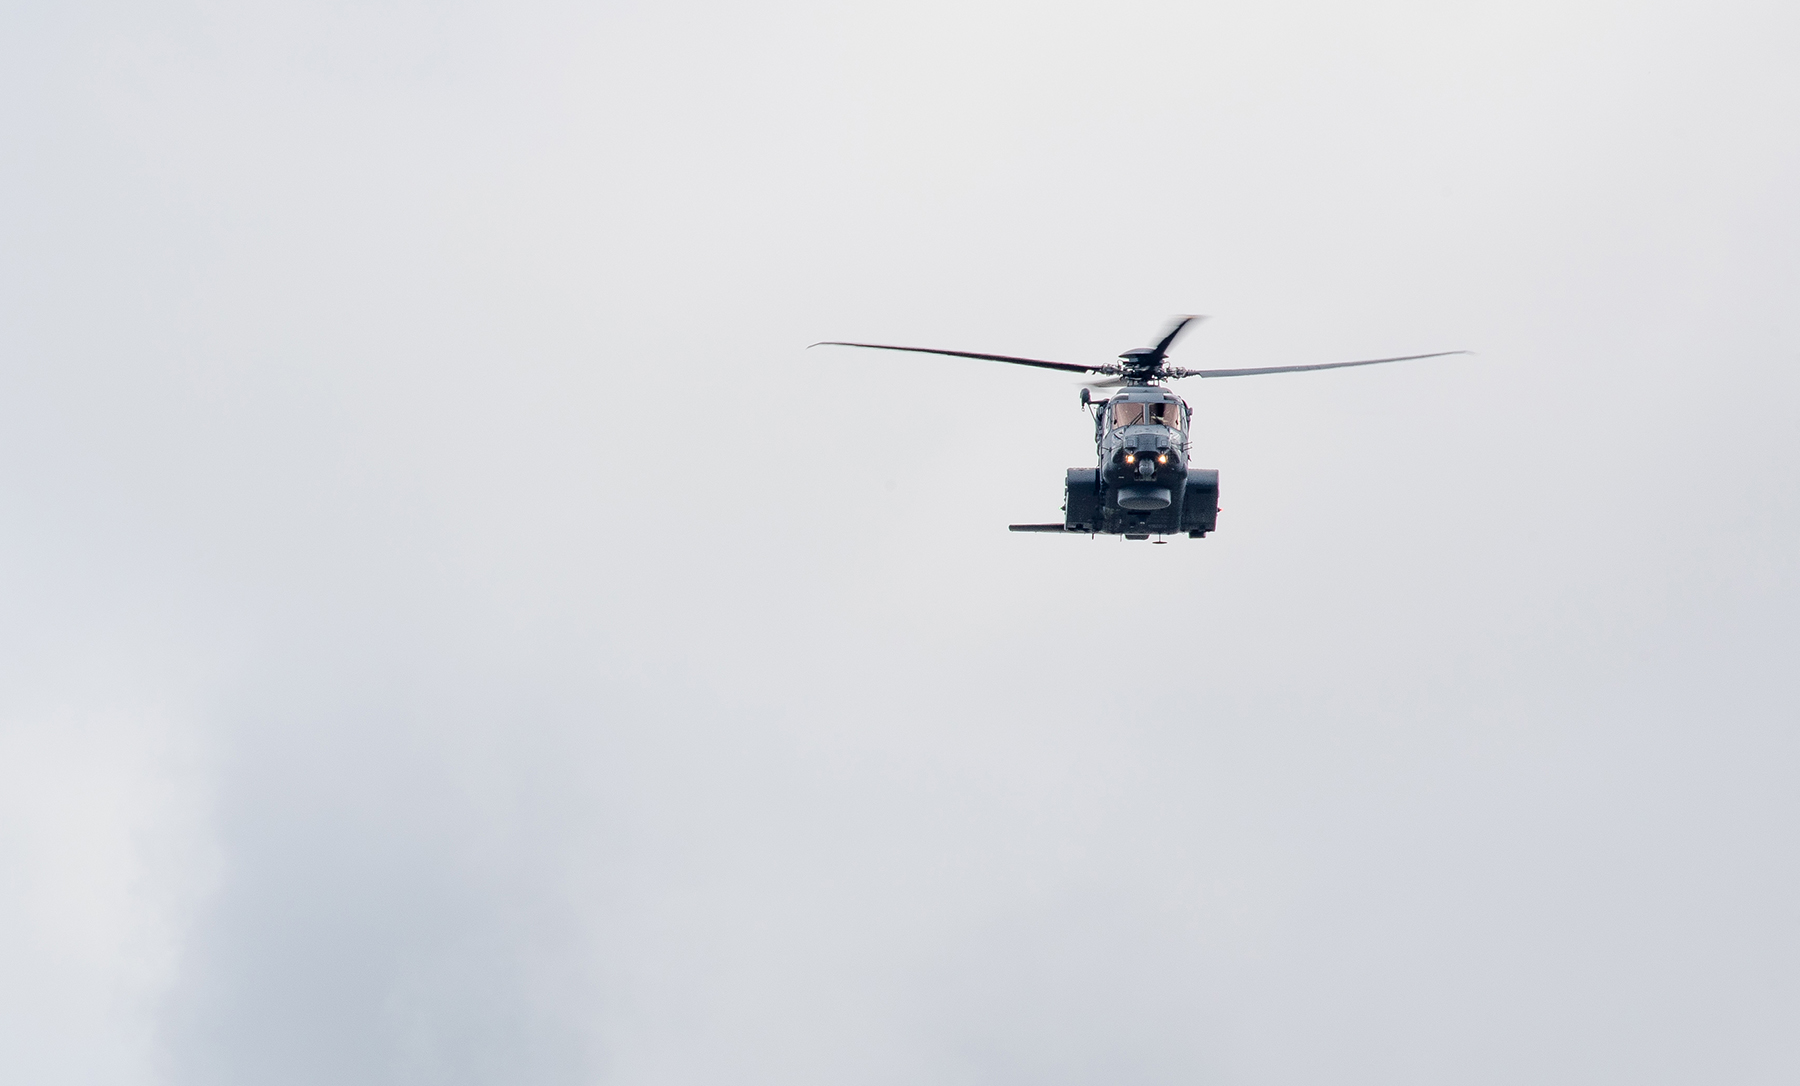 The CH-148 Cyclone, seen here overflying Ottawa, Ontario, on July 2, 2017, in celebration of Canada's 150th birthday, will replace the CH-124 Sea King as Canada's main ship-borne maritime helicopter. It will conduct surface and subsurface surveillance and control, utility, and search and rescue missions, and will also provide tactical transport for national and international security efforts. It has a maximum cruise speed of 250 km/h, and can fly 450 kilometres without refueling. PHOTO: Patrick Cardinal